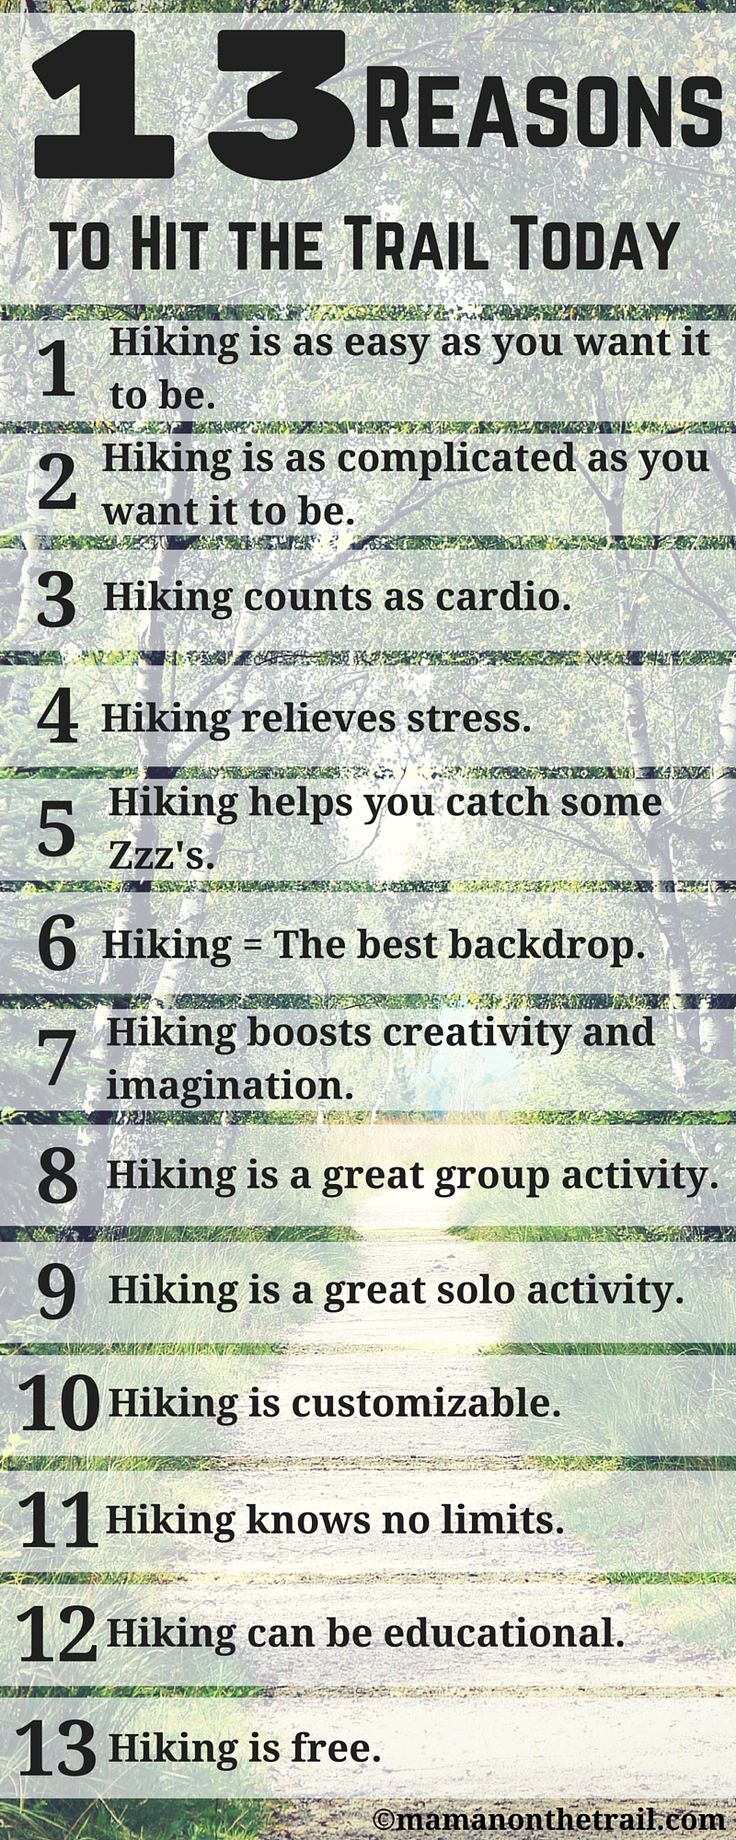 13 Reasons to Hit the Trail Today! - mamanonthetrail.com